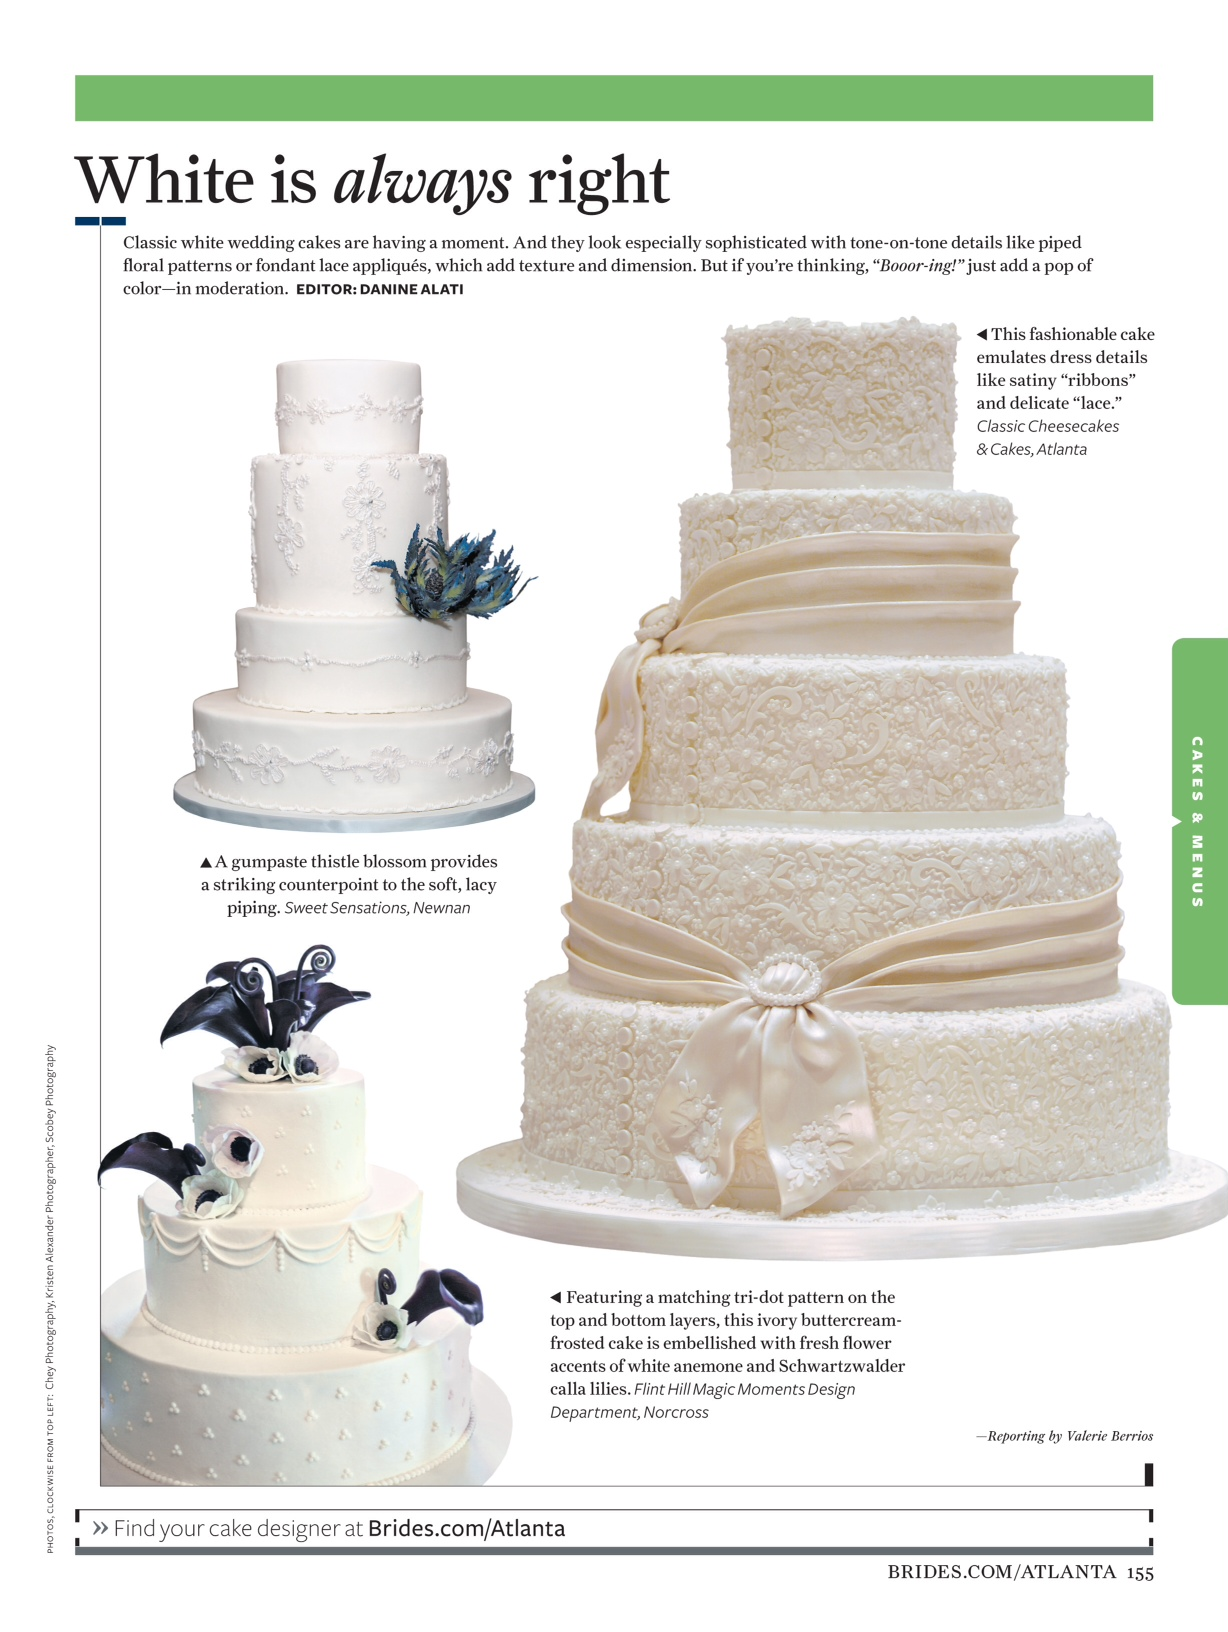 Classic Cheesecakes & Cakes Featured In Brides Magazine! | Classic ...